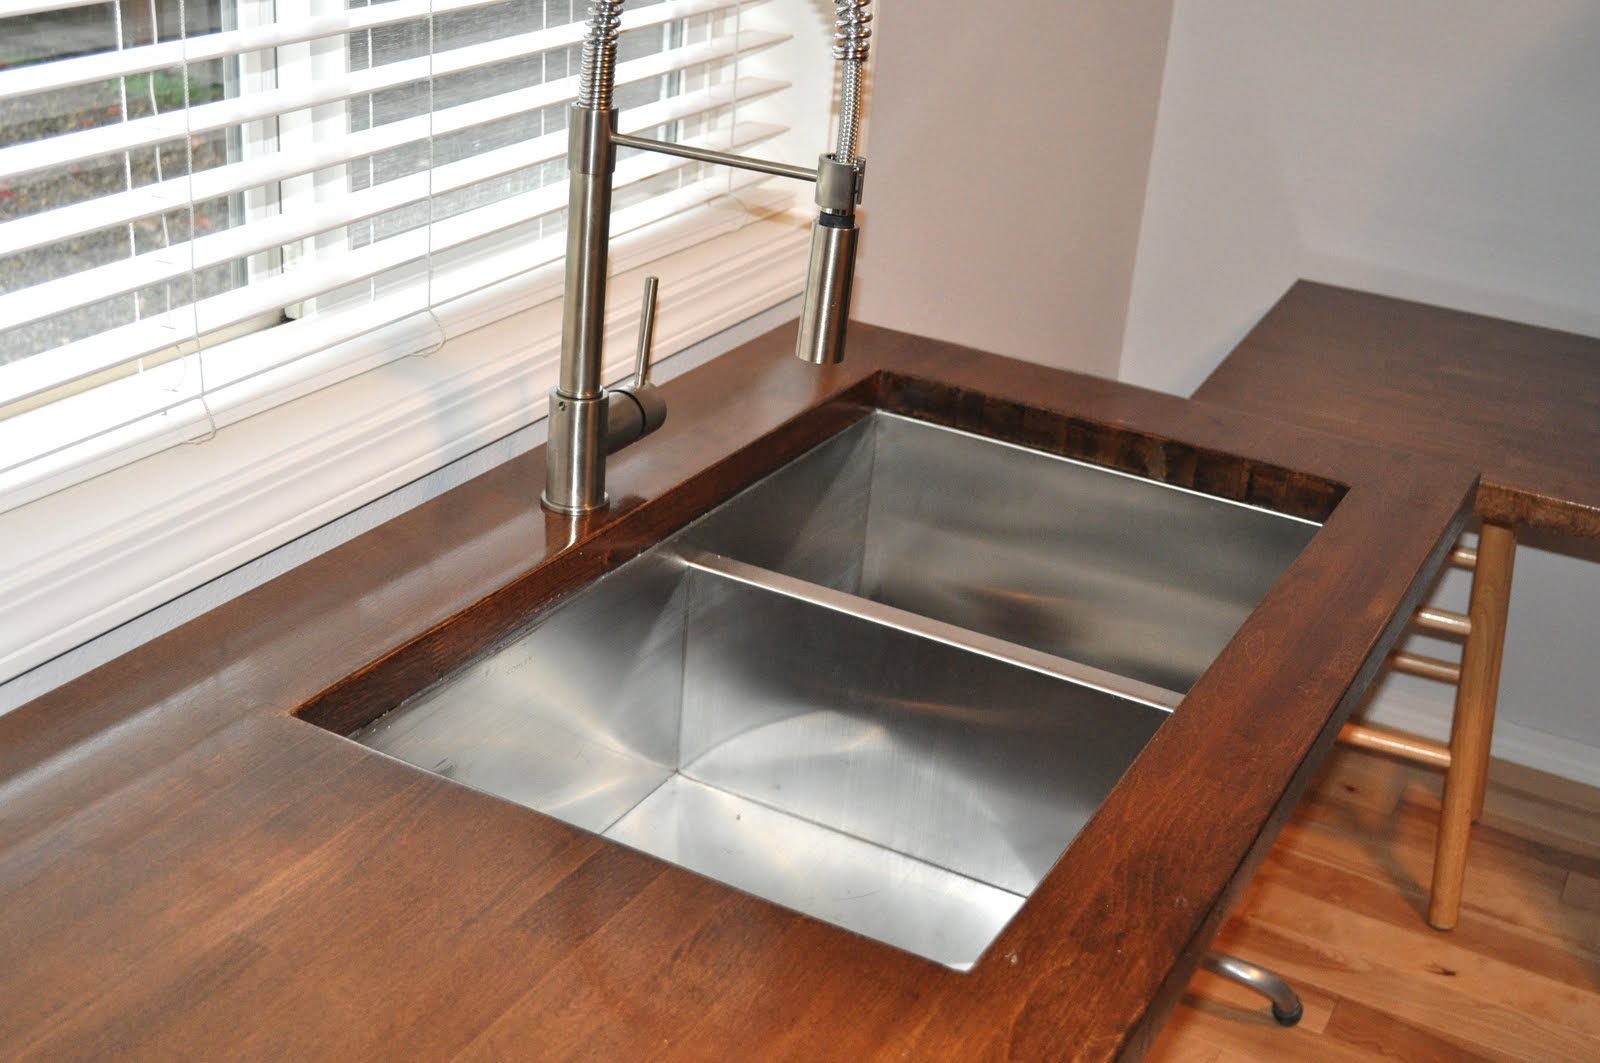 kitchen-island-with-double-bowl-stainless-steel-sink-and-butcher-block-countertop-for-modern-kitchen-decor-idea